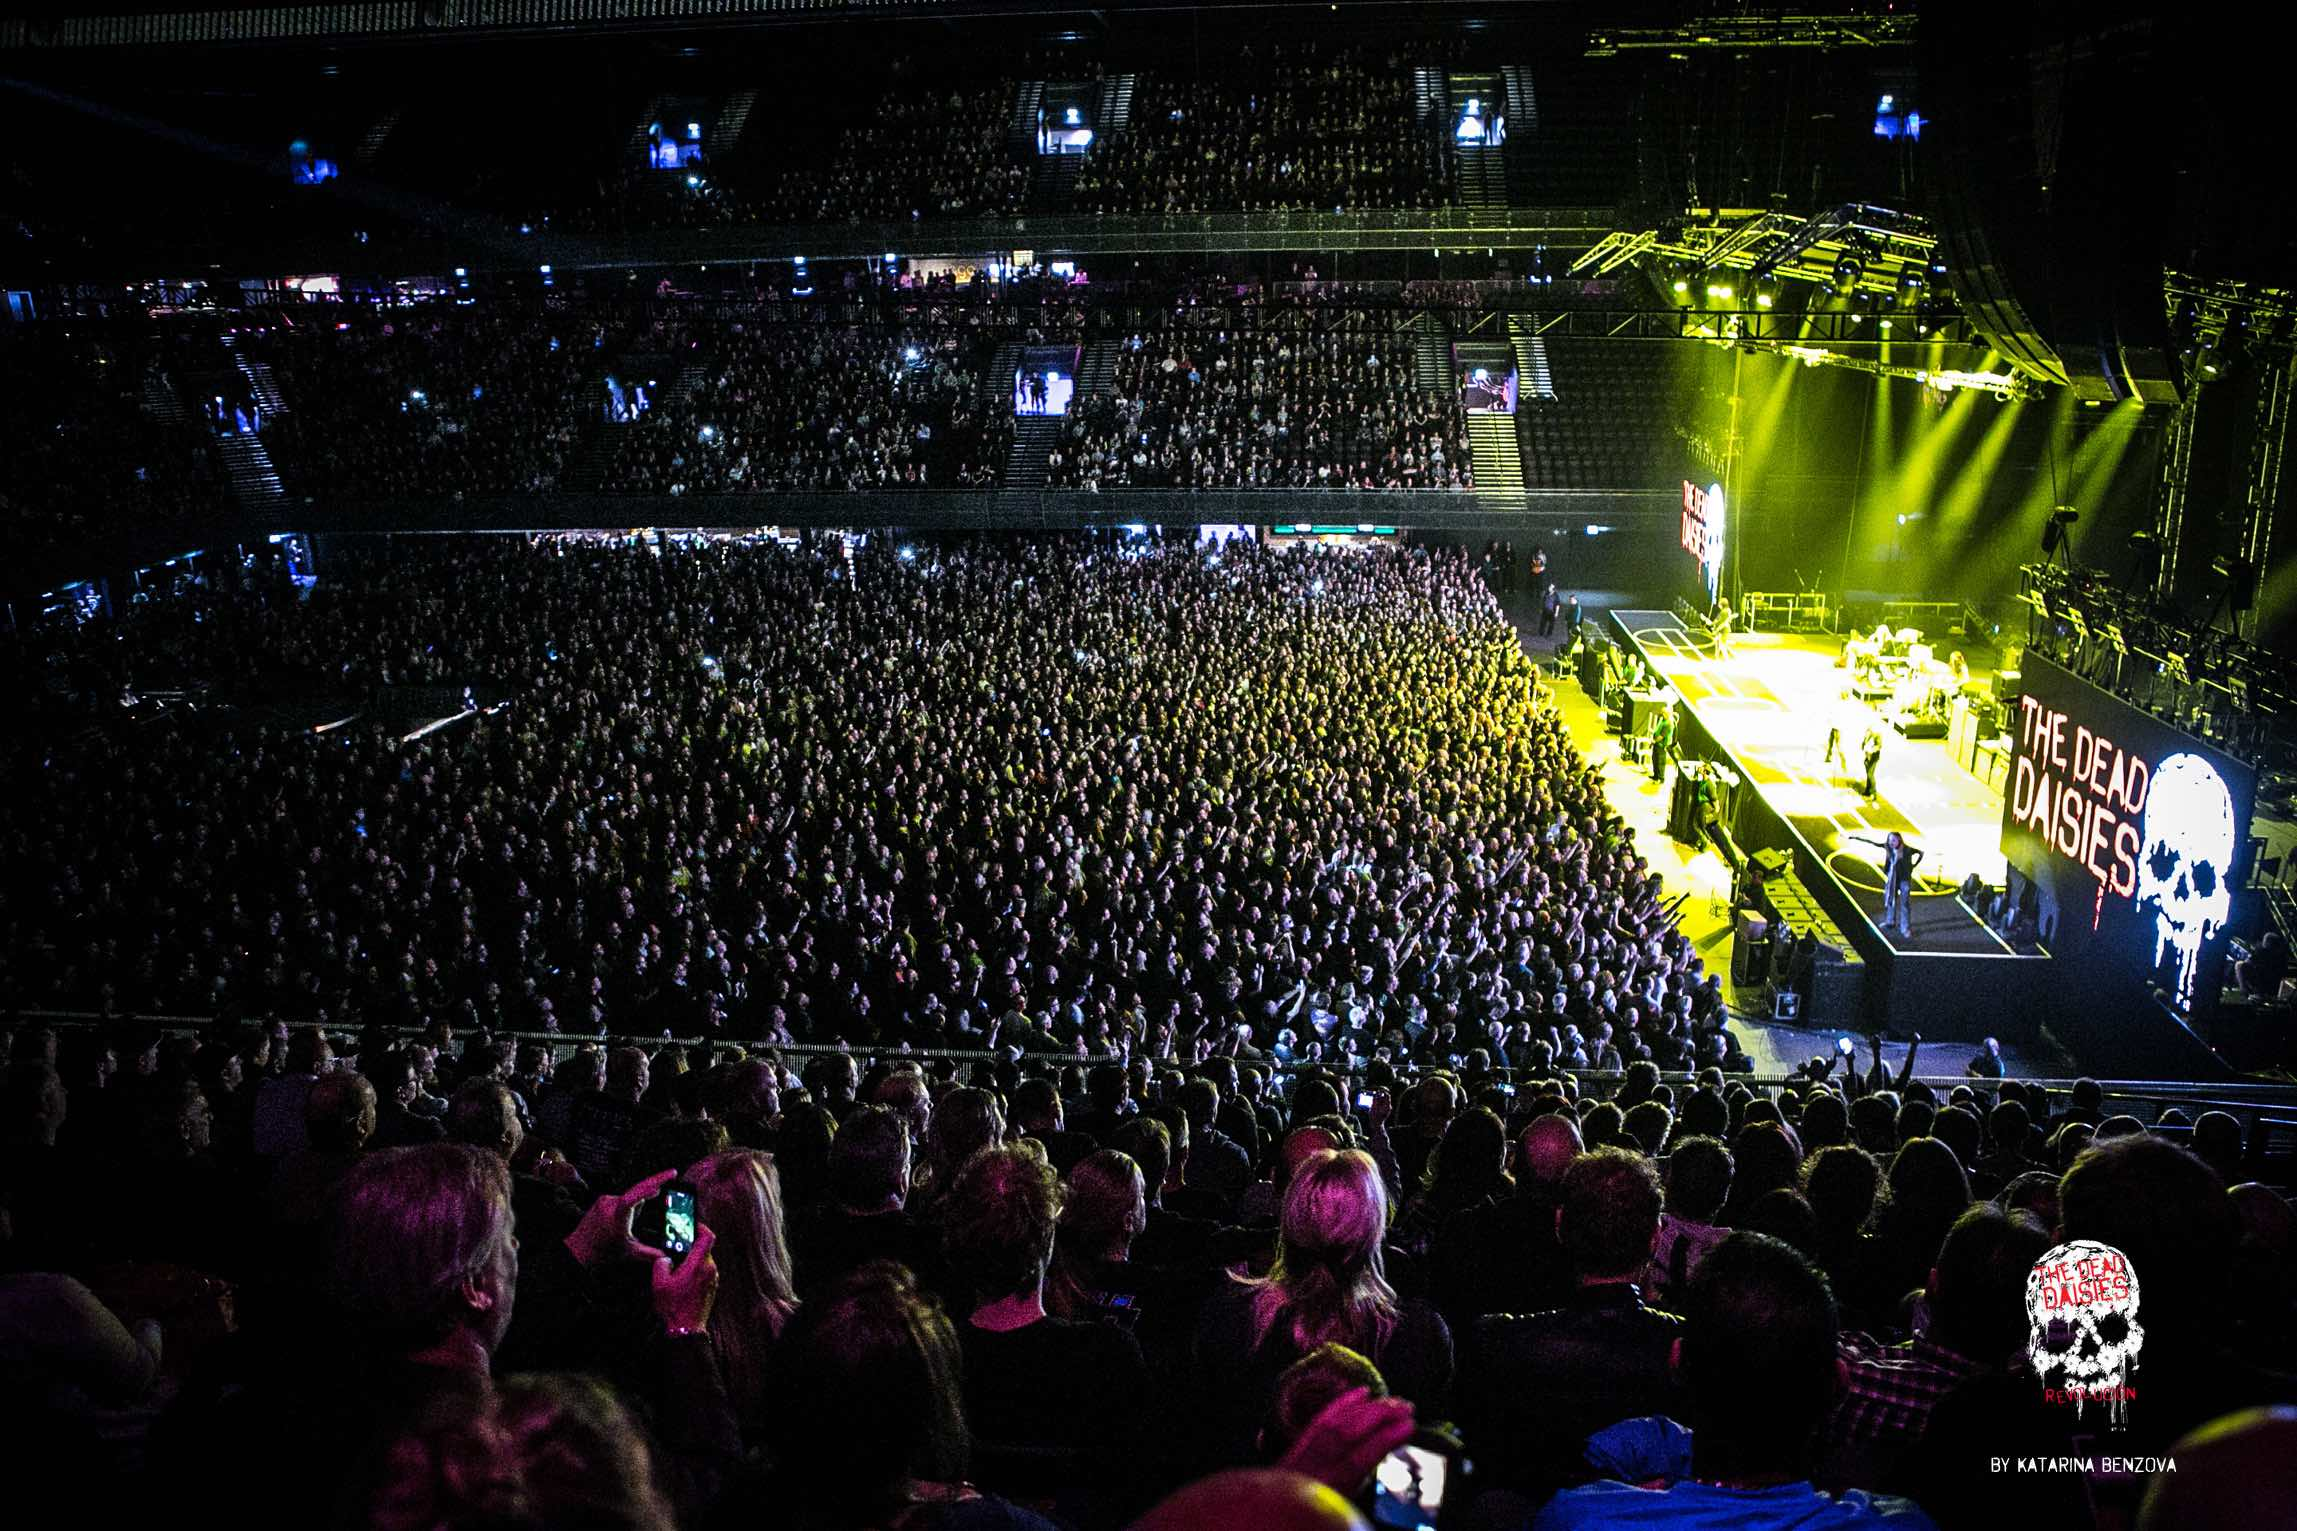 Day 21, Ziggo Dome, Amsterdam